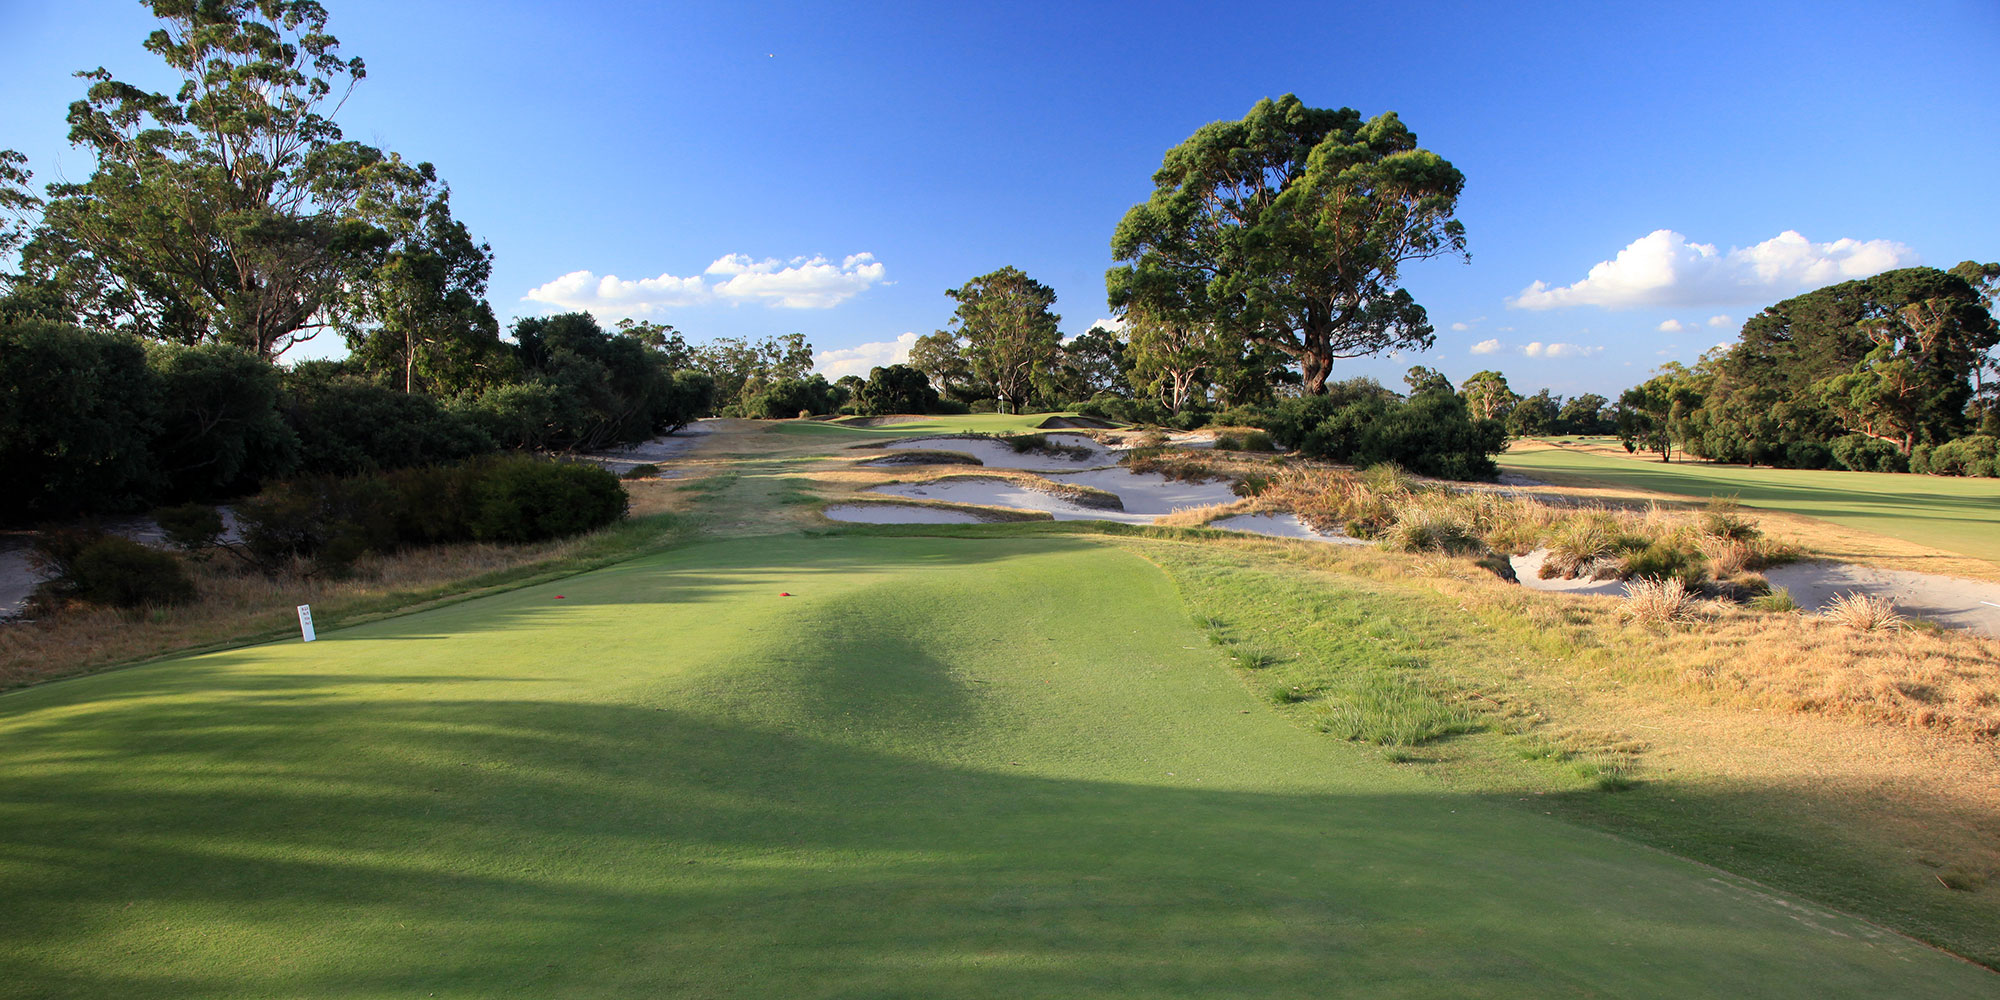 The Best Of East Coast Australian Golf | Melbourne, King Island, Tasmania and Sydney | 12 nights, 9 games